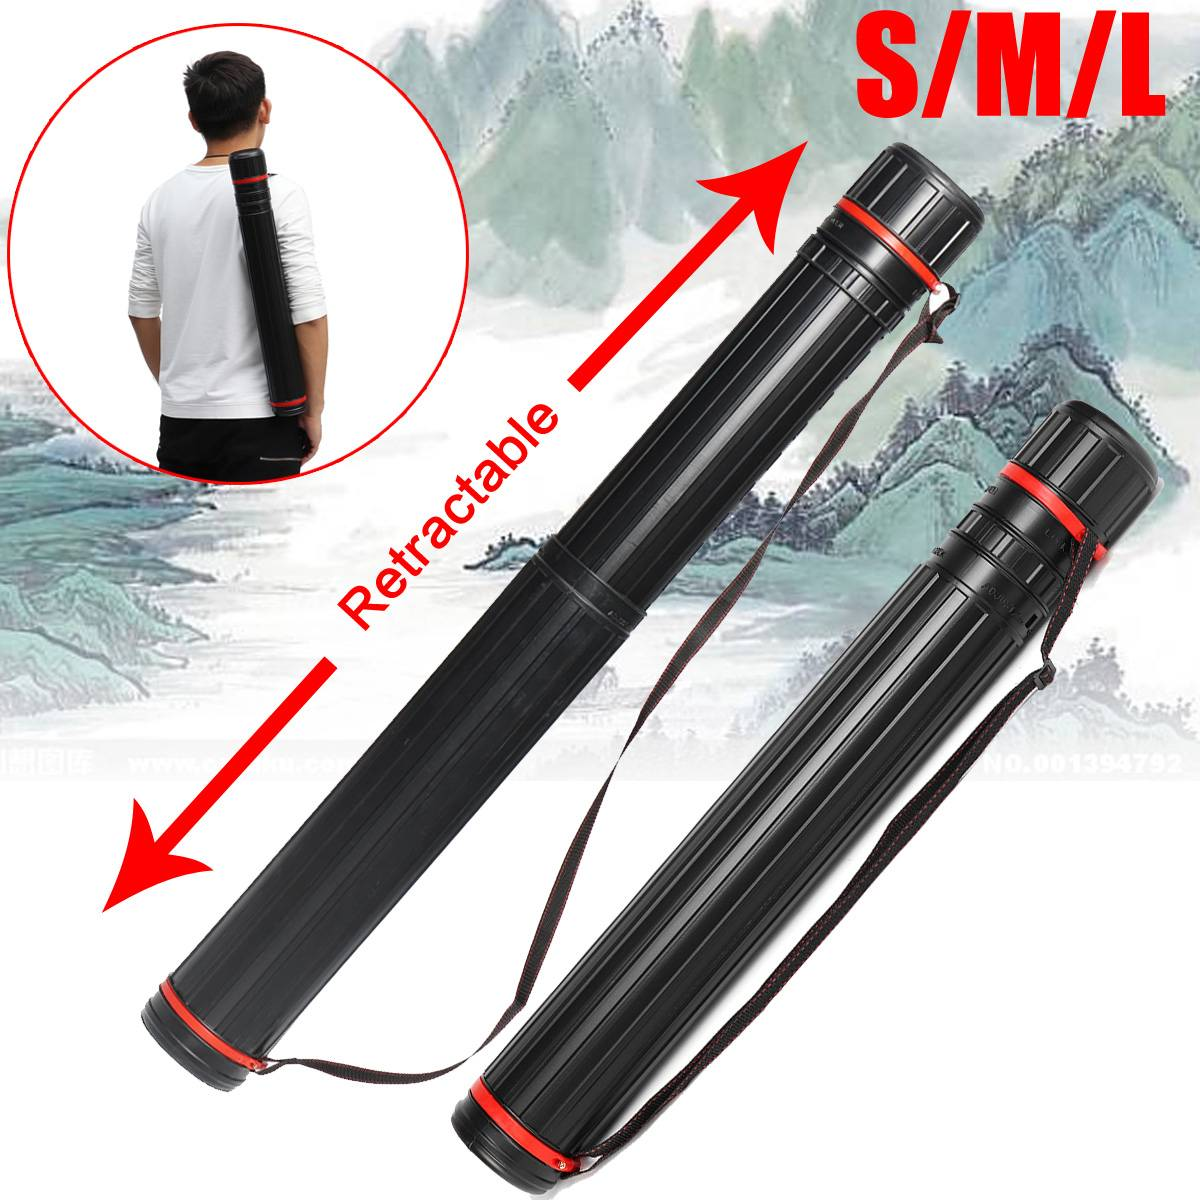 Adjustable Drawing Picture Storage Tube Poster Scroll Holder Bow Arrow Quiver Tube 63-135 cm Painting Art SuppliesAdjustable Drawing Picture Storage Tube Poster Scroll Holder Bow Arrow Quiver Tube 63-135 cm Painting Art Supplies